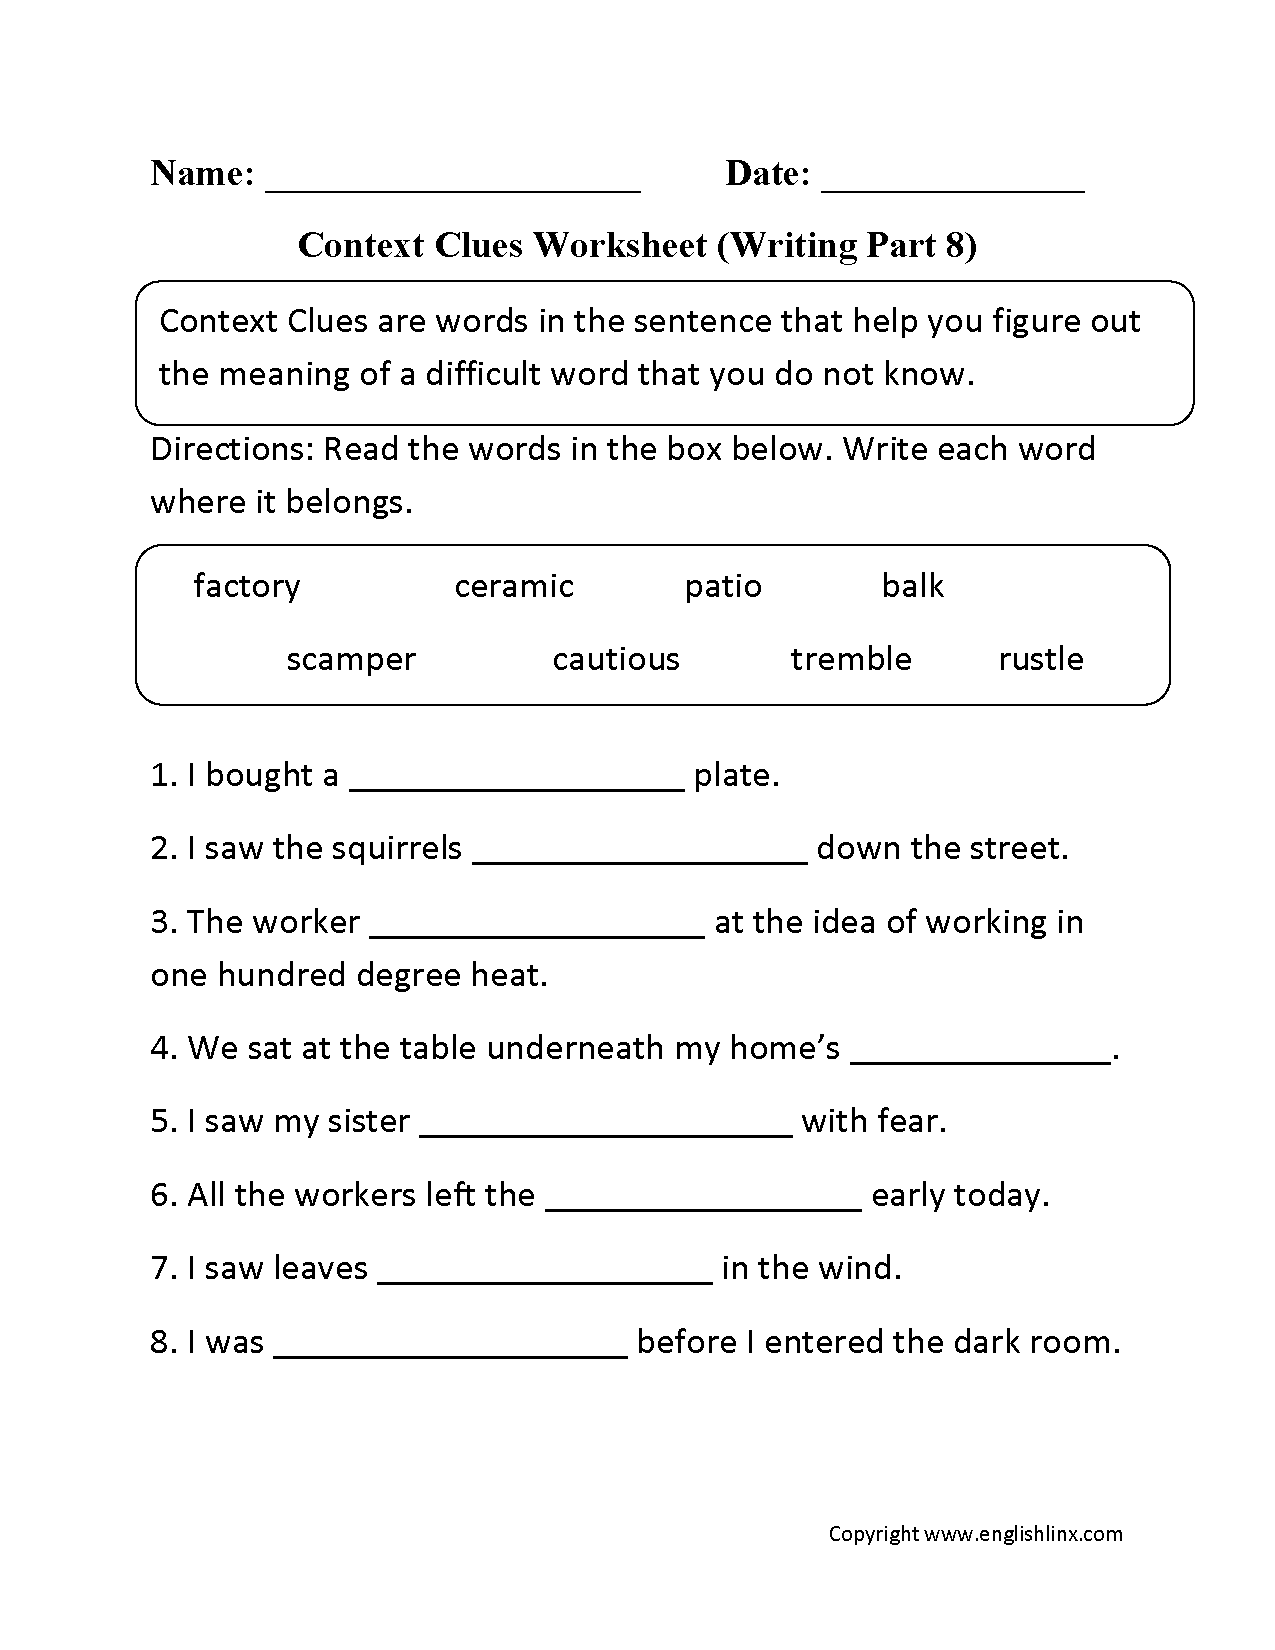 Context Clues Worksheets – Context Clues Worksheets 6th Grade